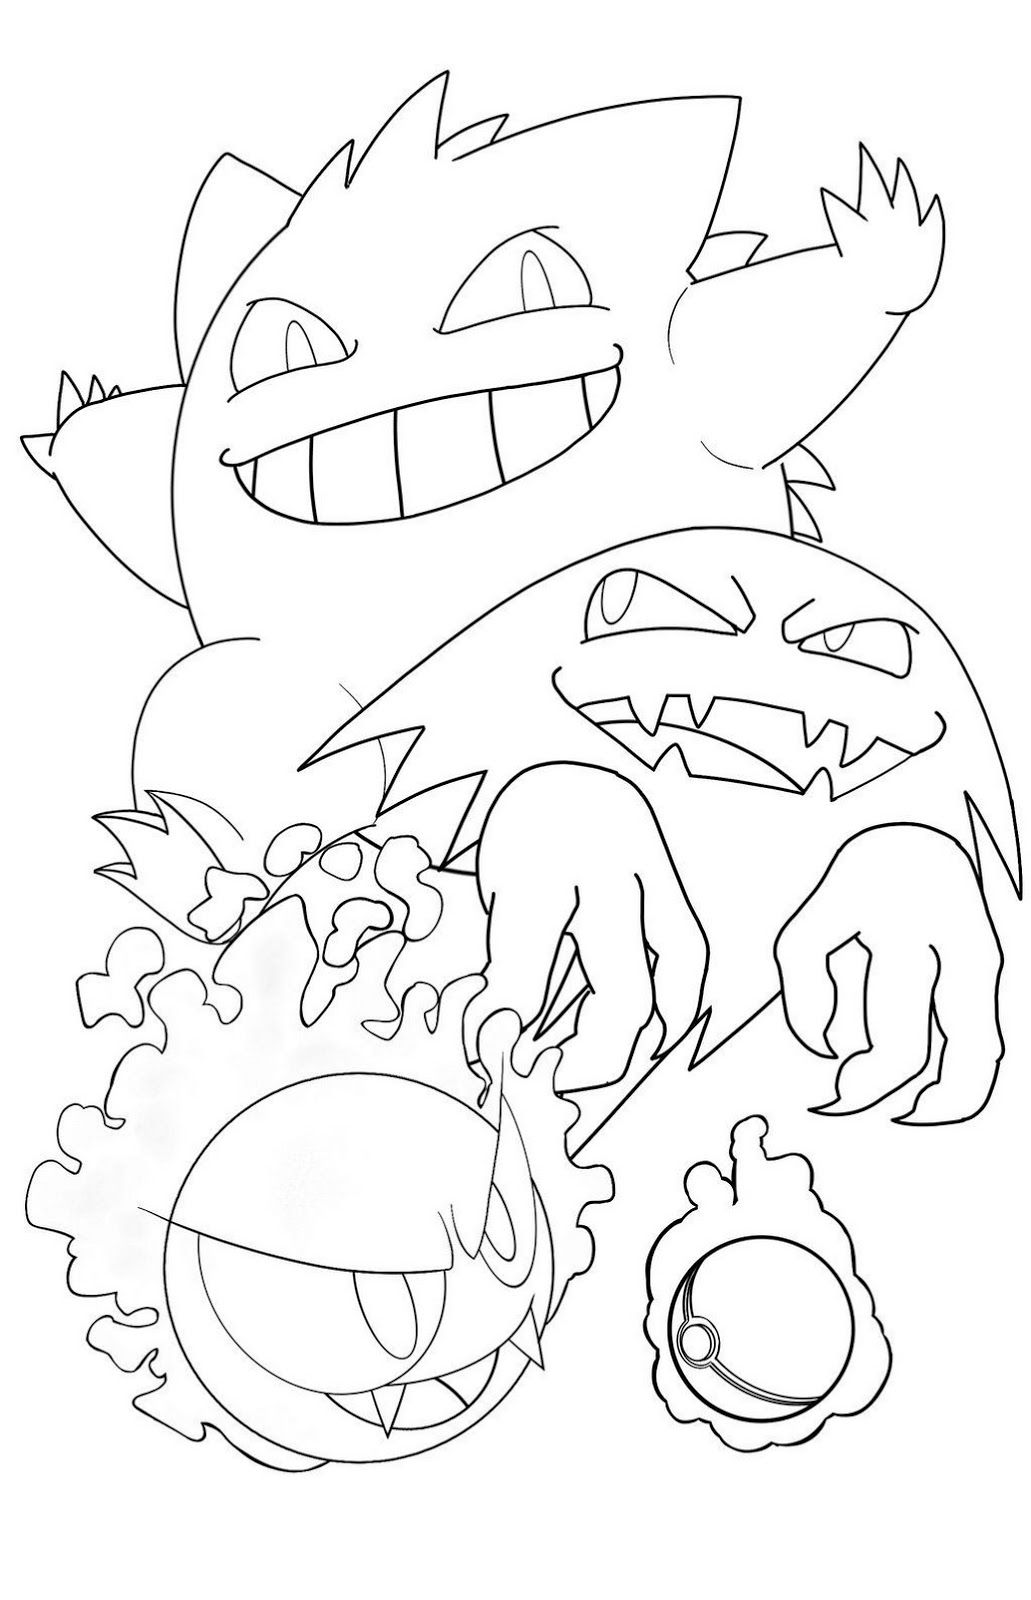 Pokemon Gastly Haunter And Gengar Coloring Pages Pokemon Coloring Pages Pokemon Coloring Pokemon Tattoo